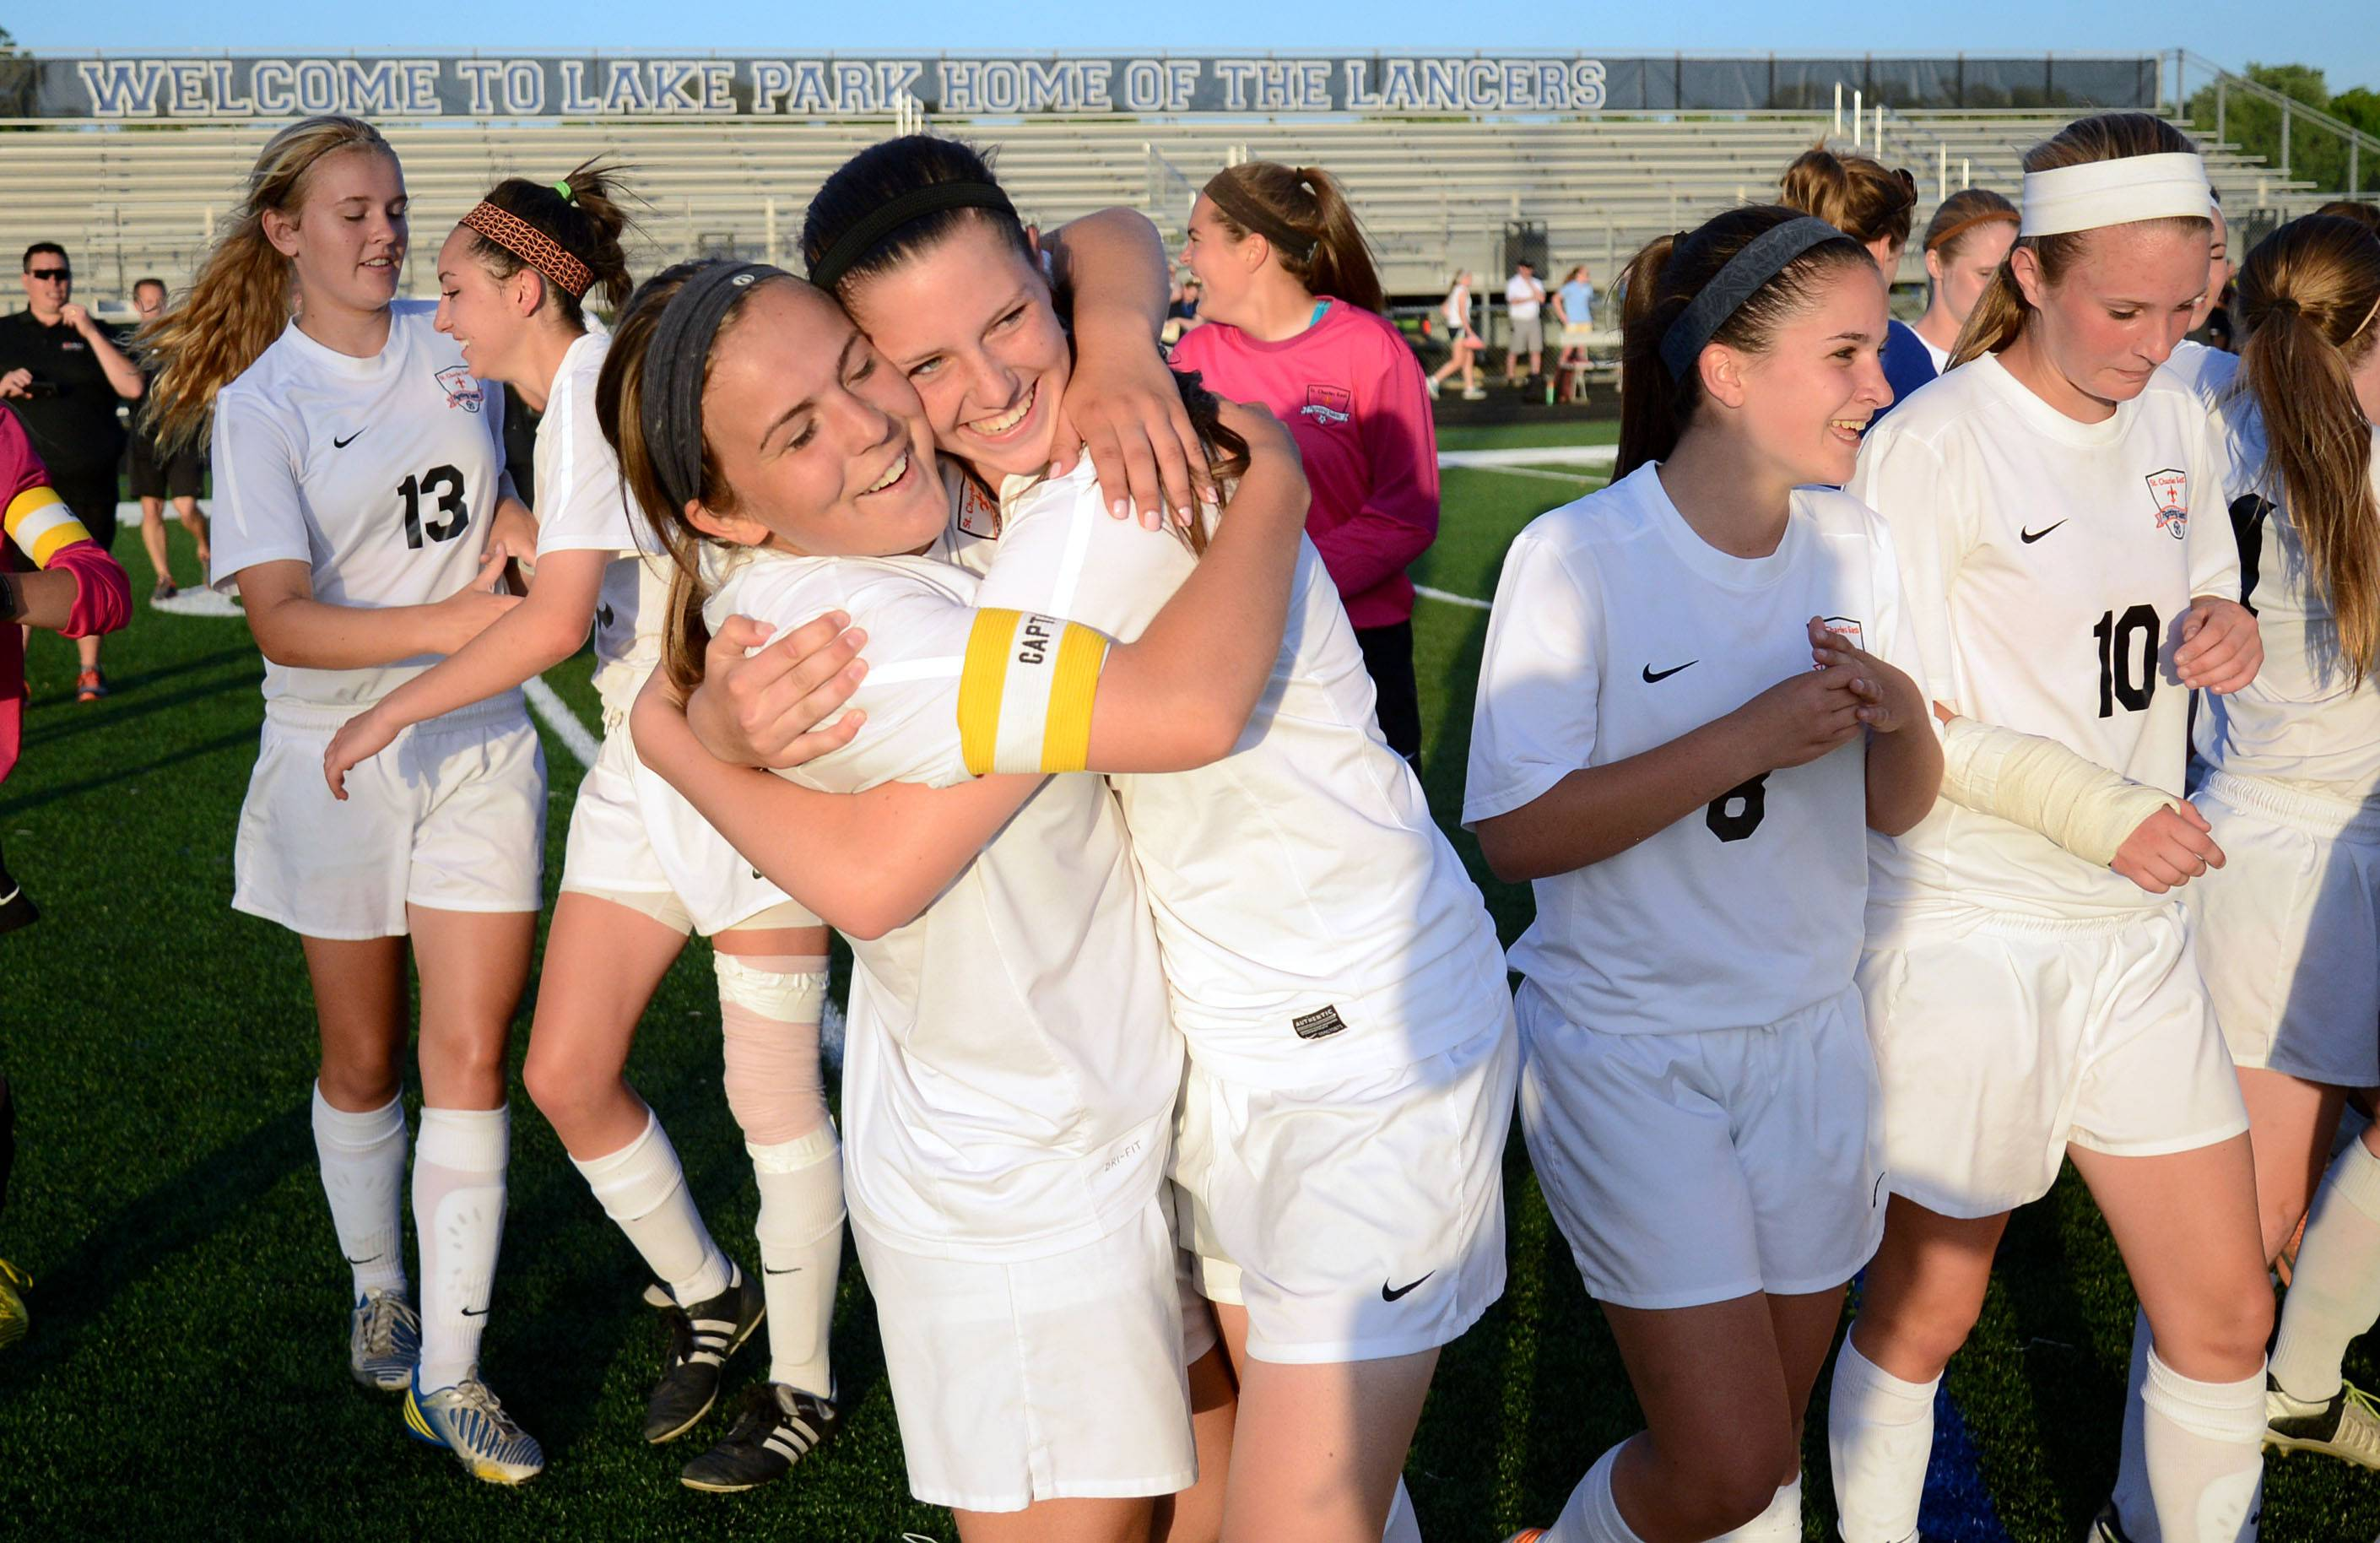 St. Charles East's Anna Corirosi, left, and Rion Gaffney embrace as they walk off the field after their Class 3A girls soccer supersectional win over Huntley at Lake Park High School in Roselle on Tuesday, June 3.